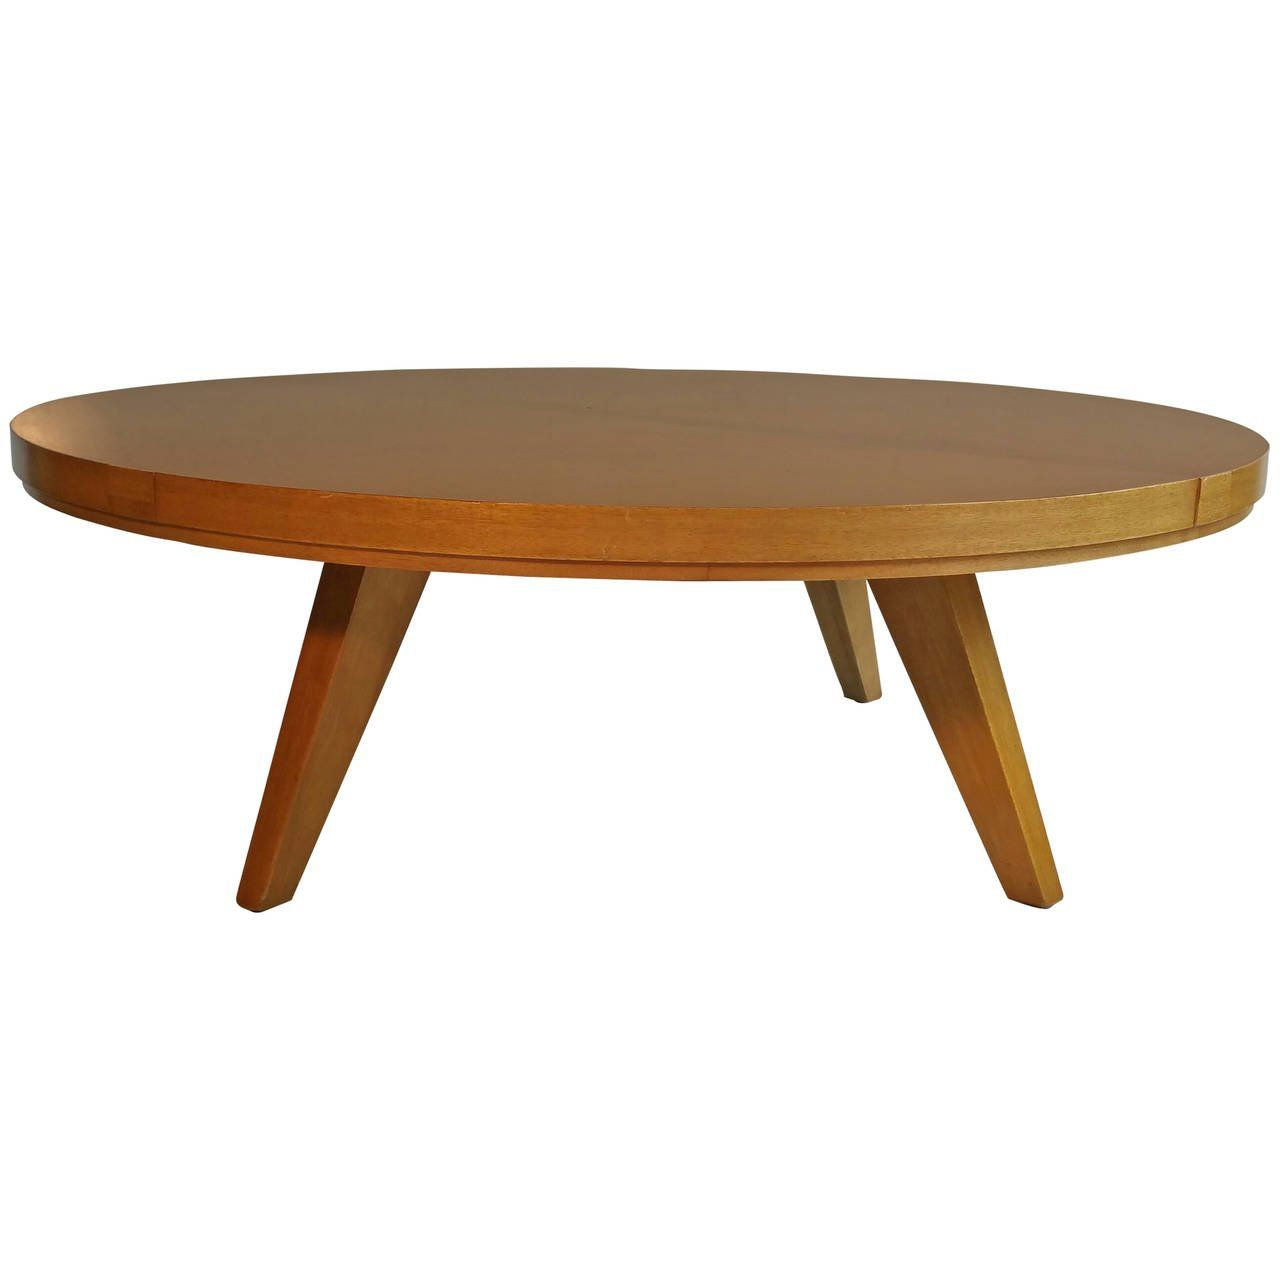 Image Result For Modern Coffee Table Mid Century Modern Coffee Table Modern Coffee Tables Coffee Table [ 1280 x 1280 Pixel ]